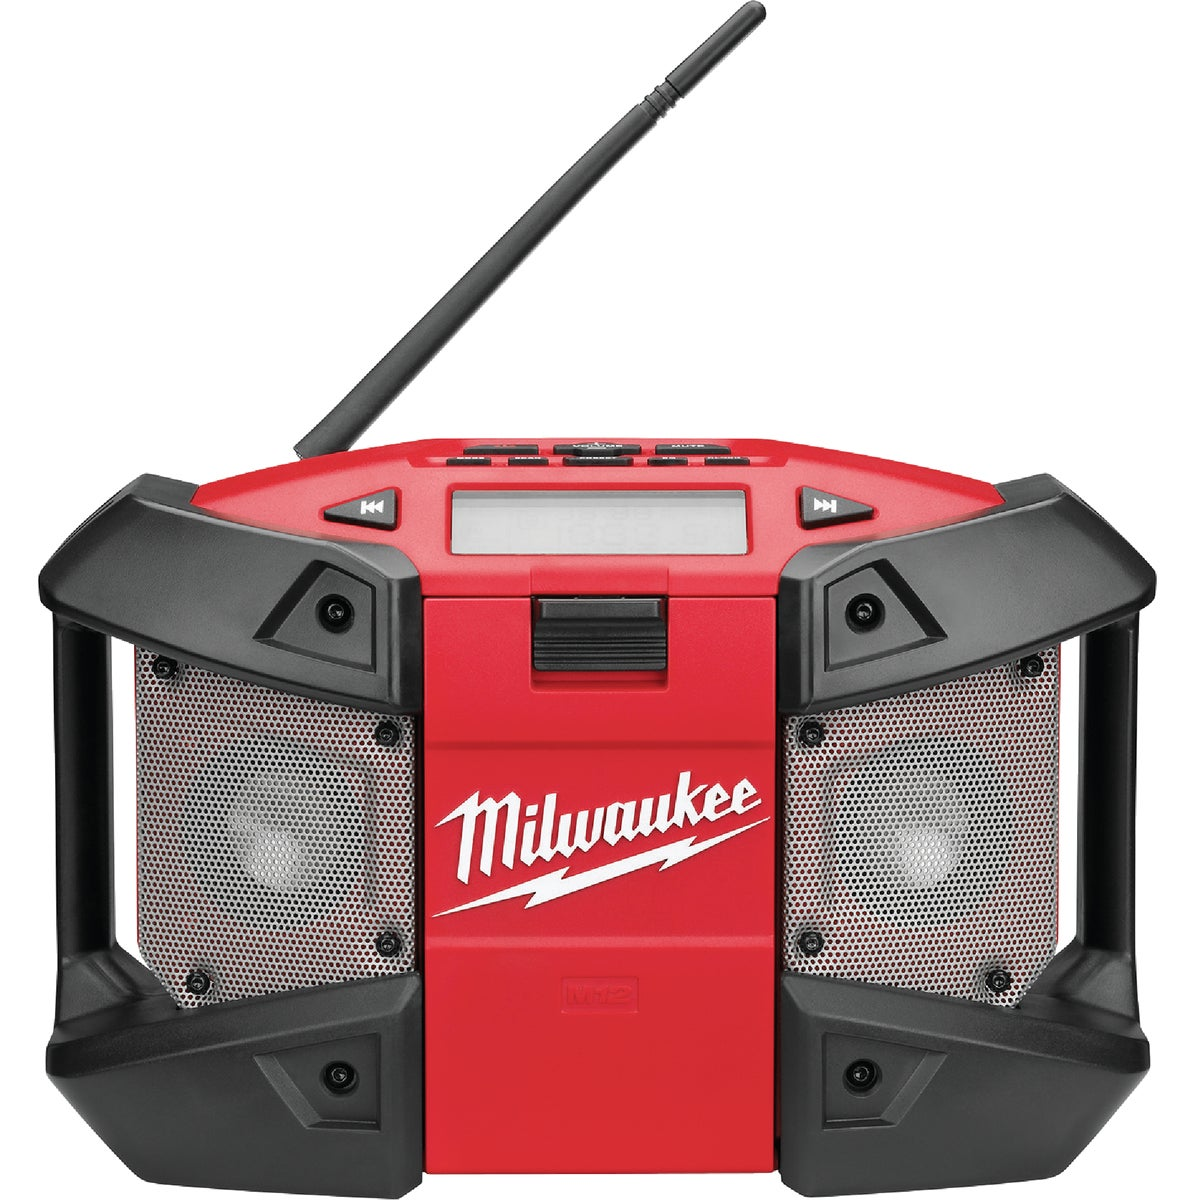 M12 12V RADIO - 259020 by Milwaukee Elec Tool